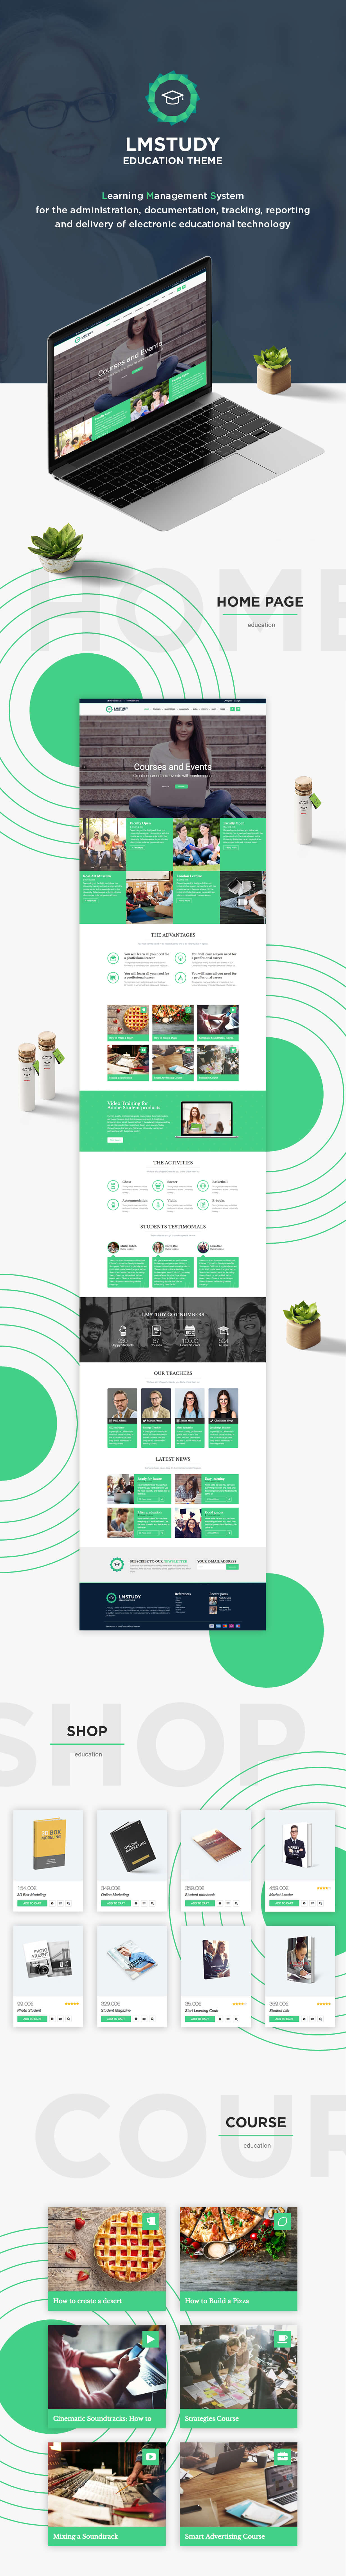 LMStudy - Course / Learning / Education LMS WooCommerce Theme - 2